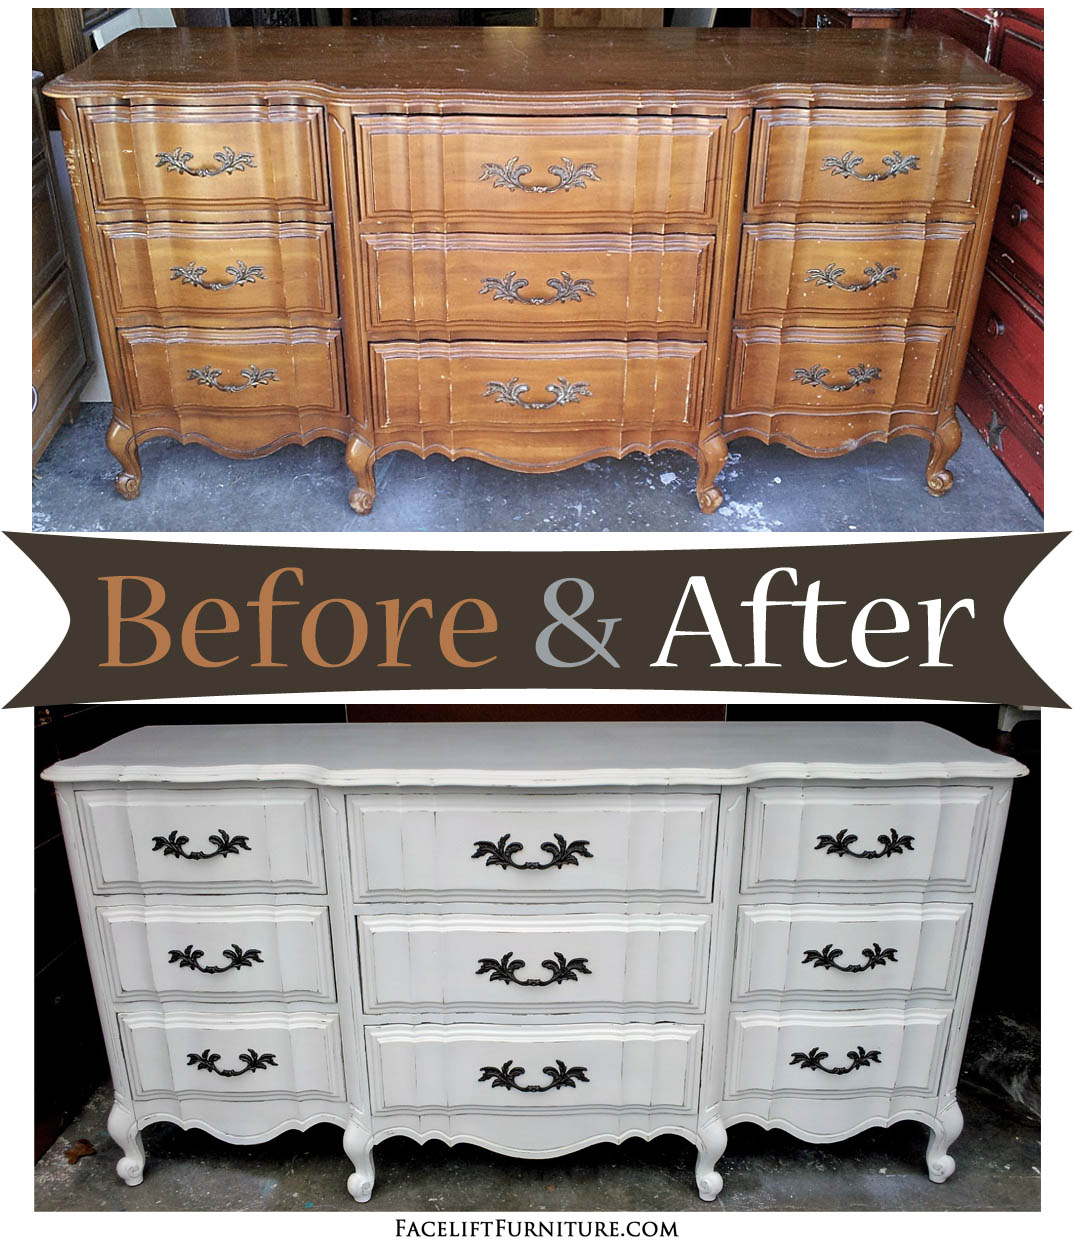 - Antiqued White French Dresser - Before & After - Facelift Furniture